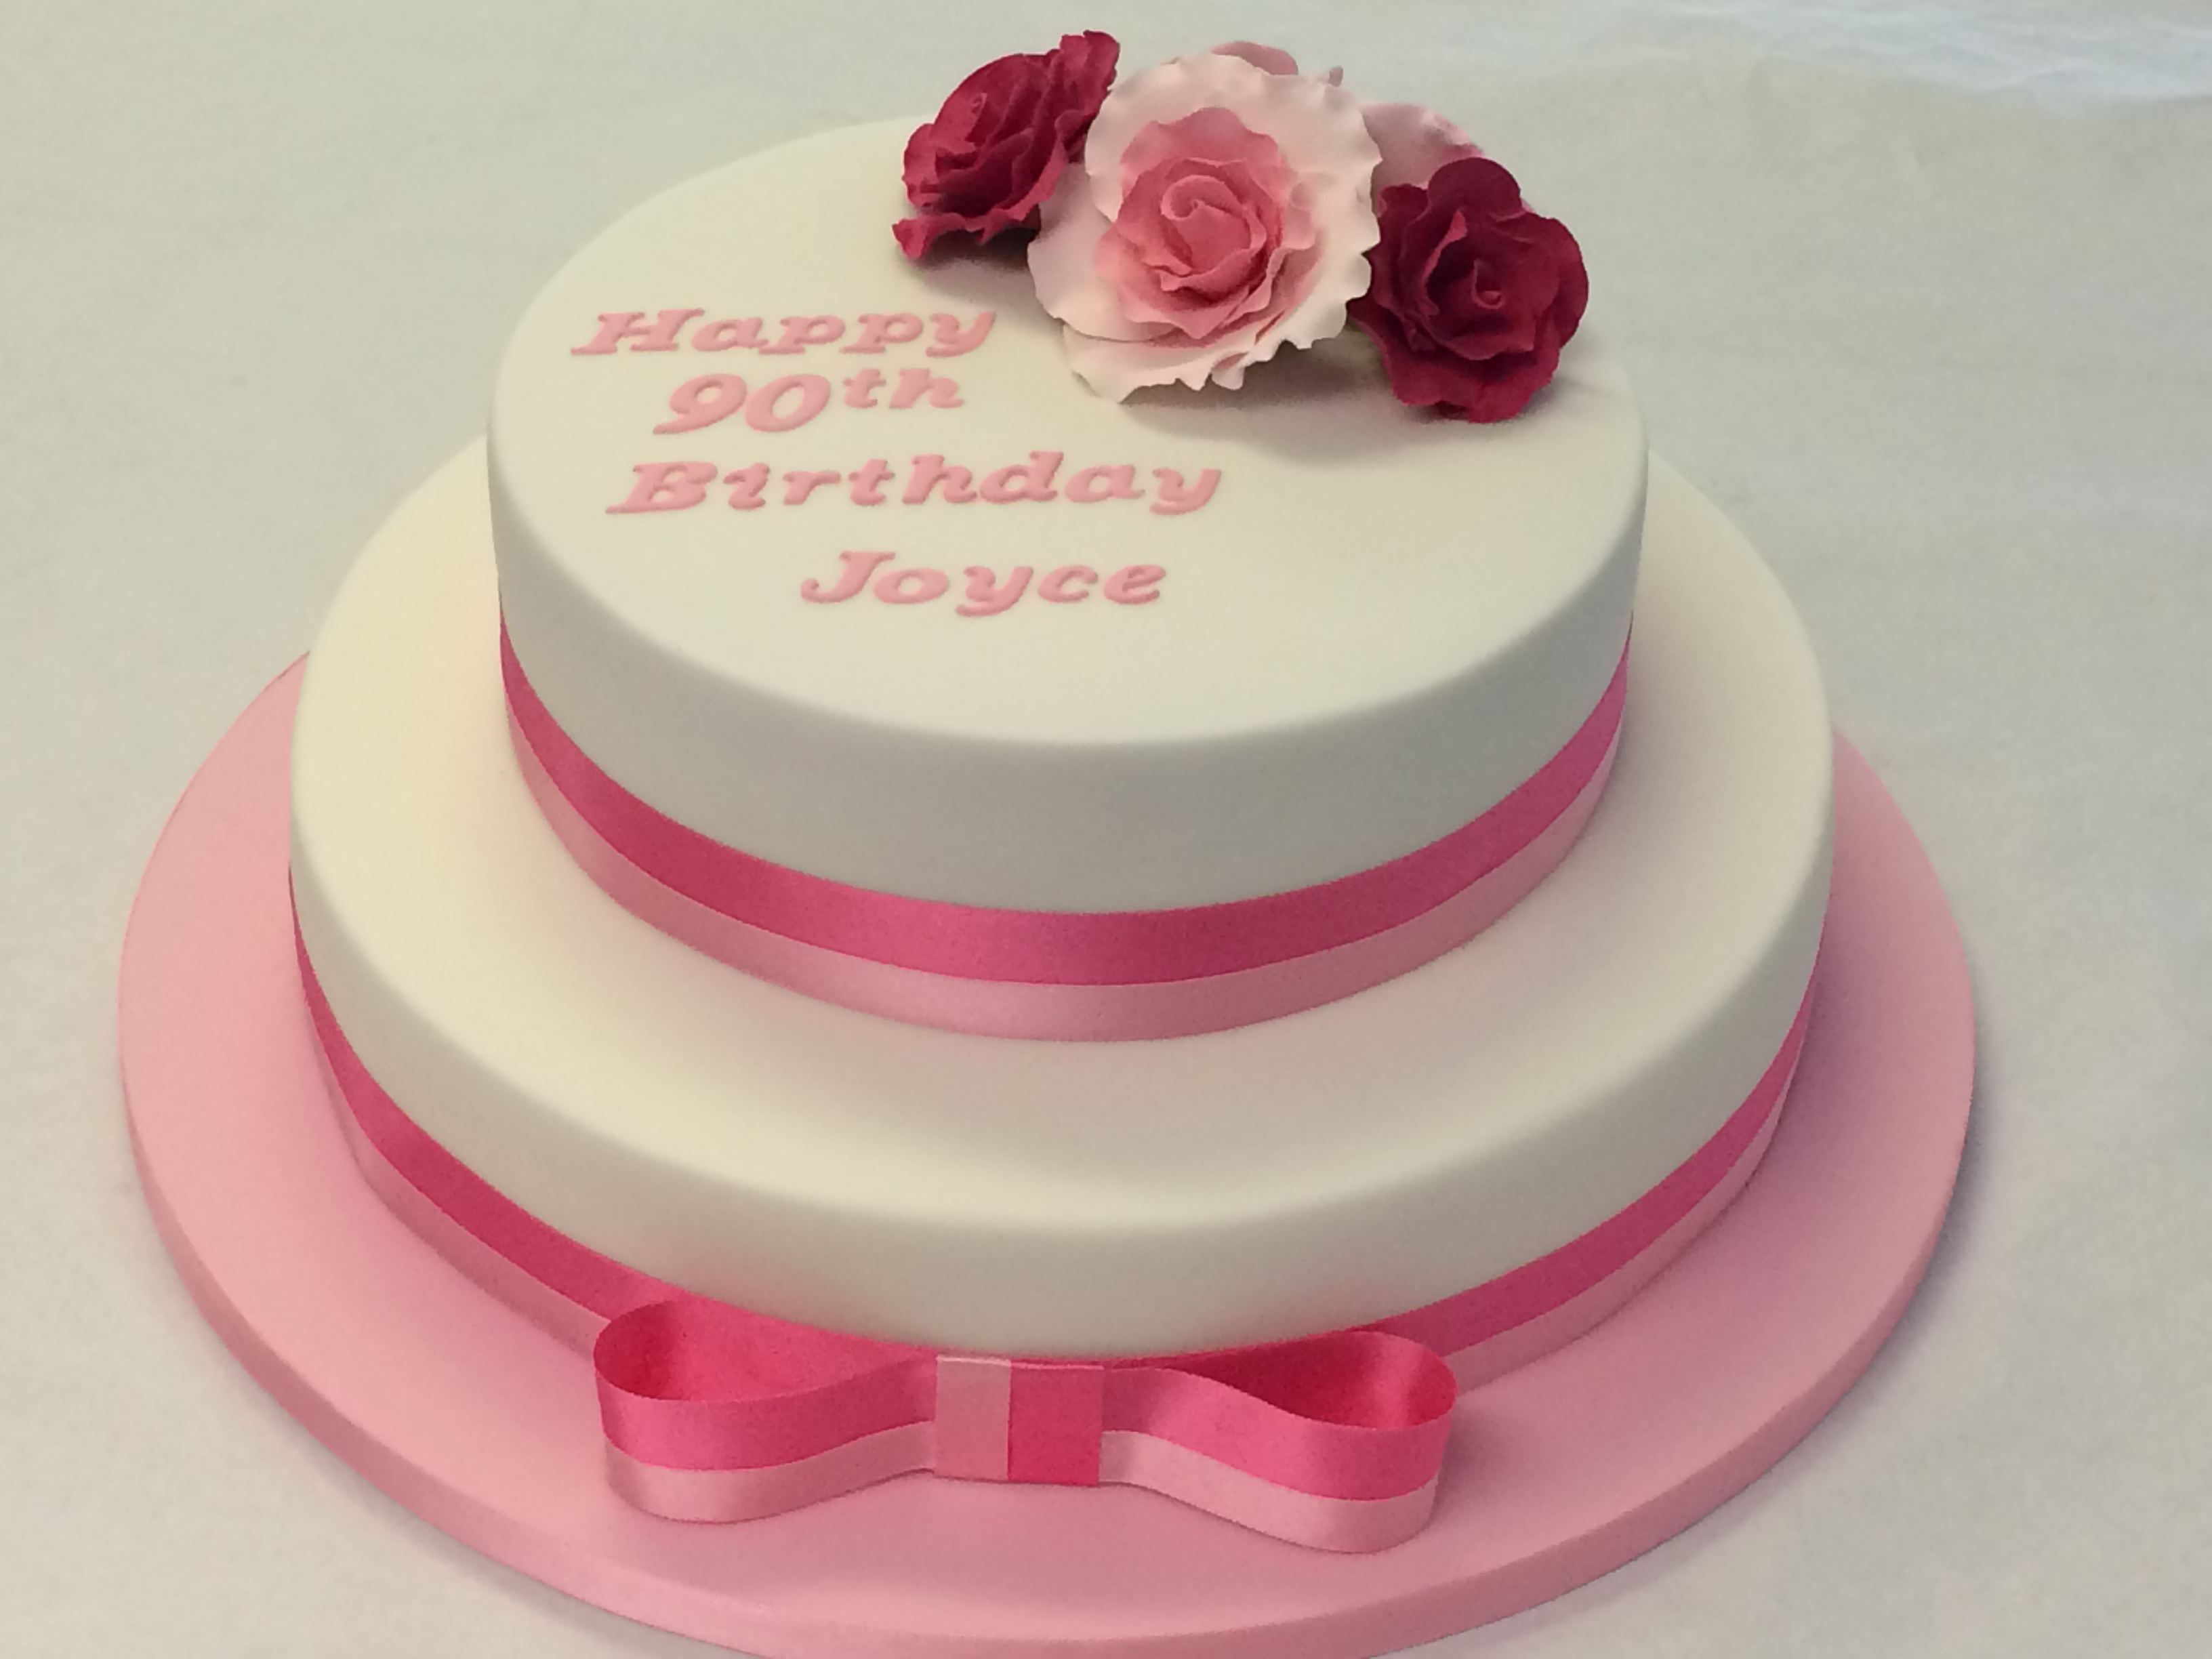 90Th Birthday Cake Ideas 2 Tiered 90th Birthday Cake With Roses Adult Birthday Cakes